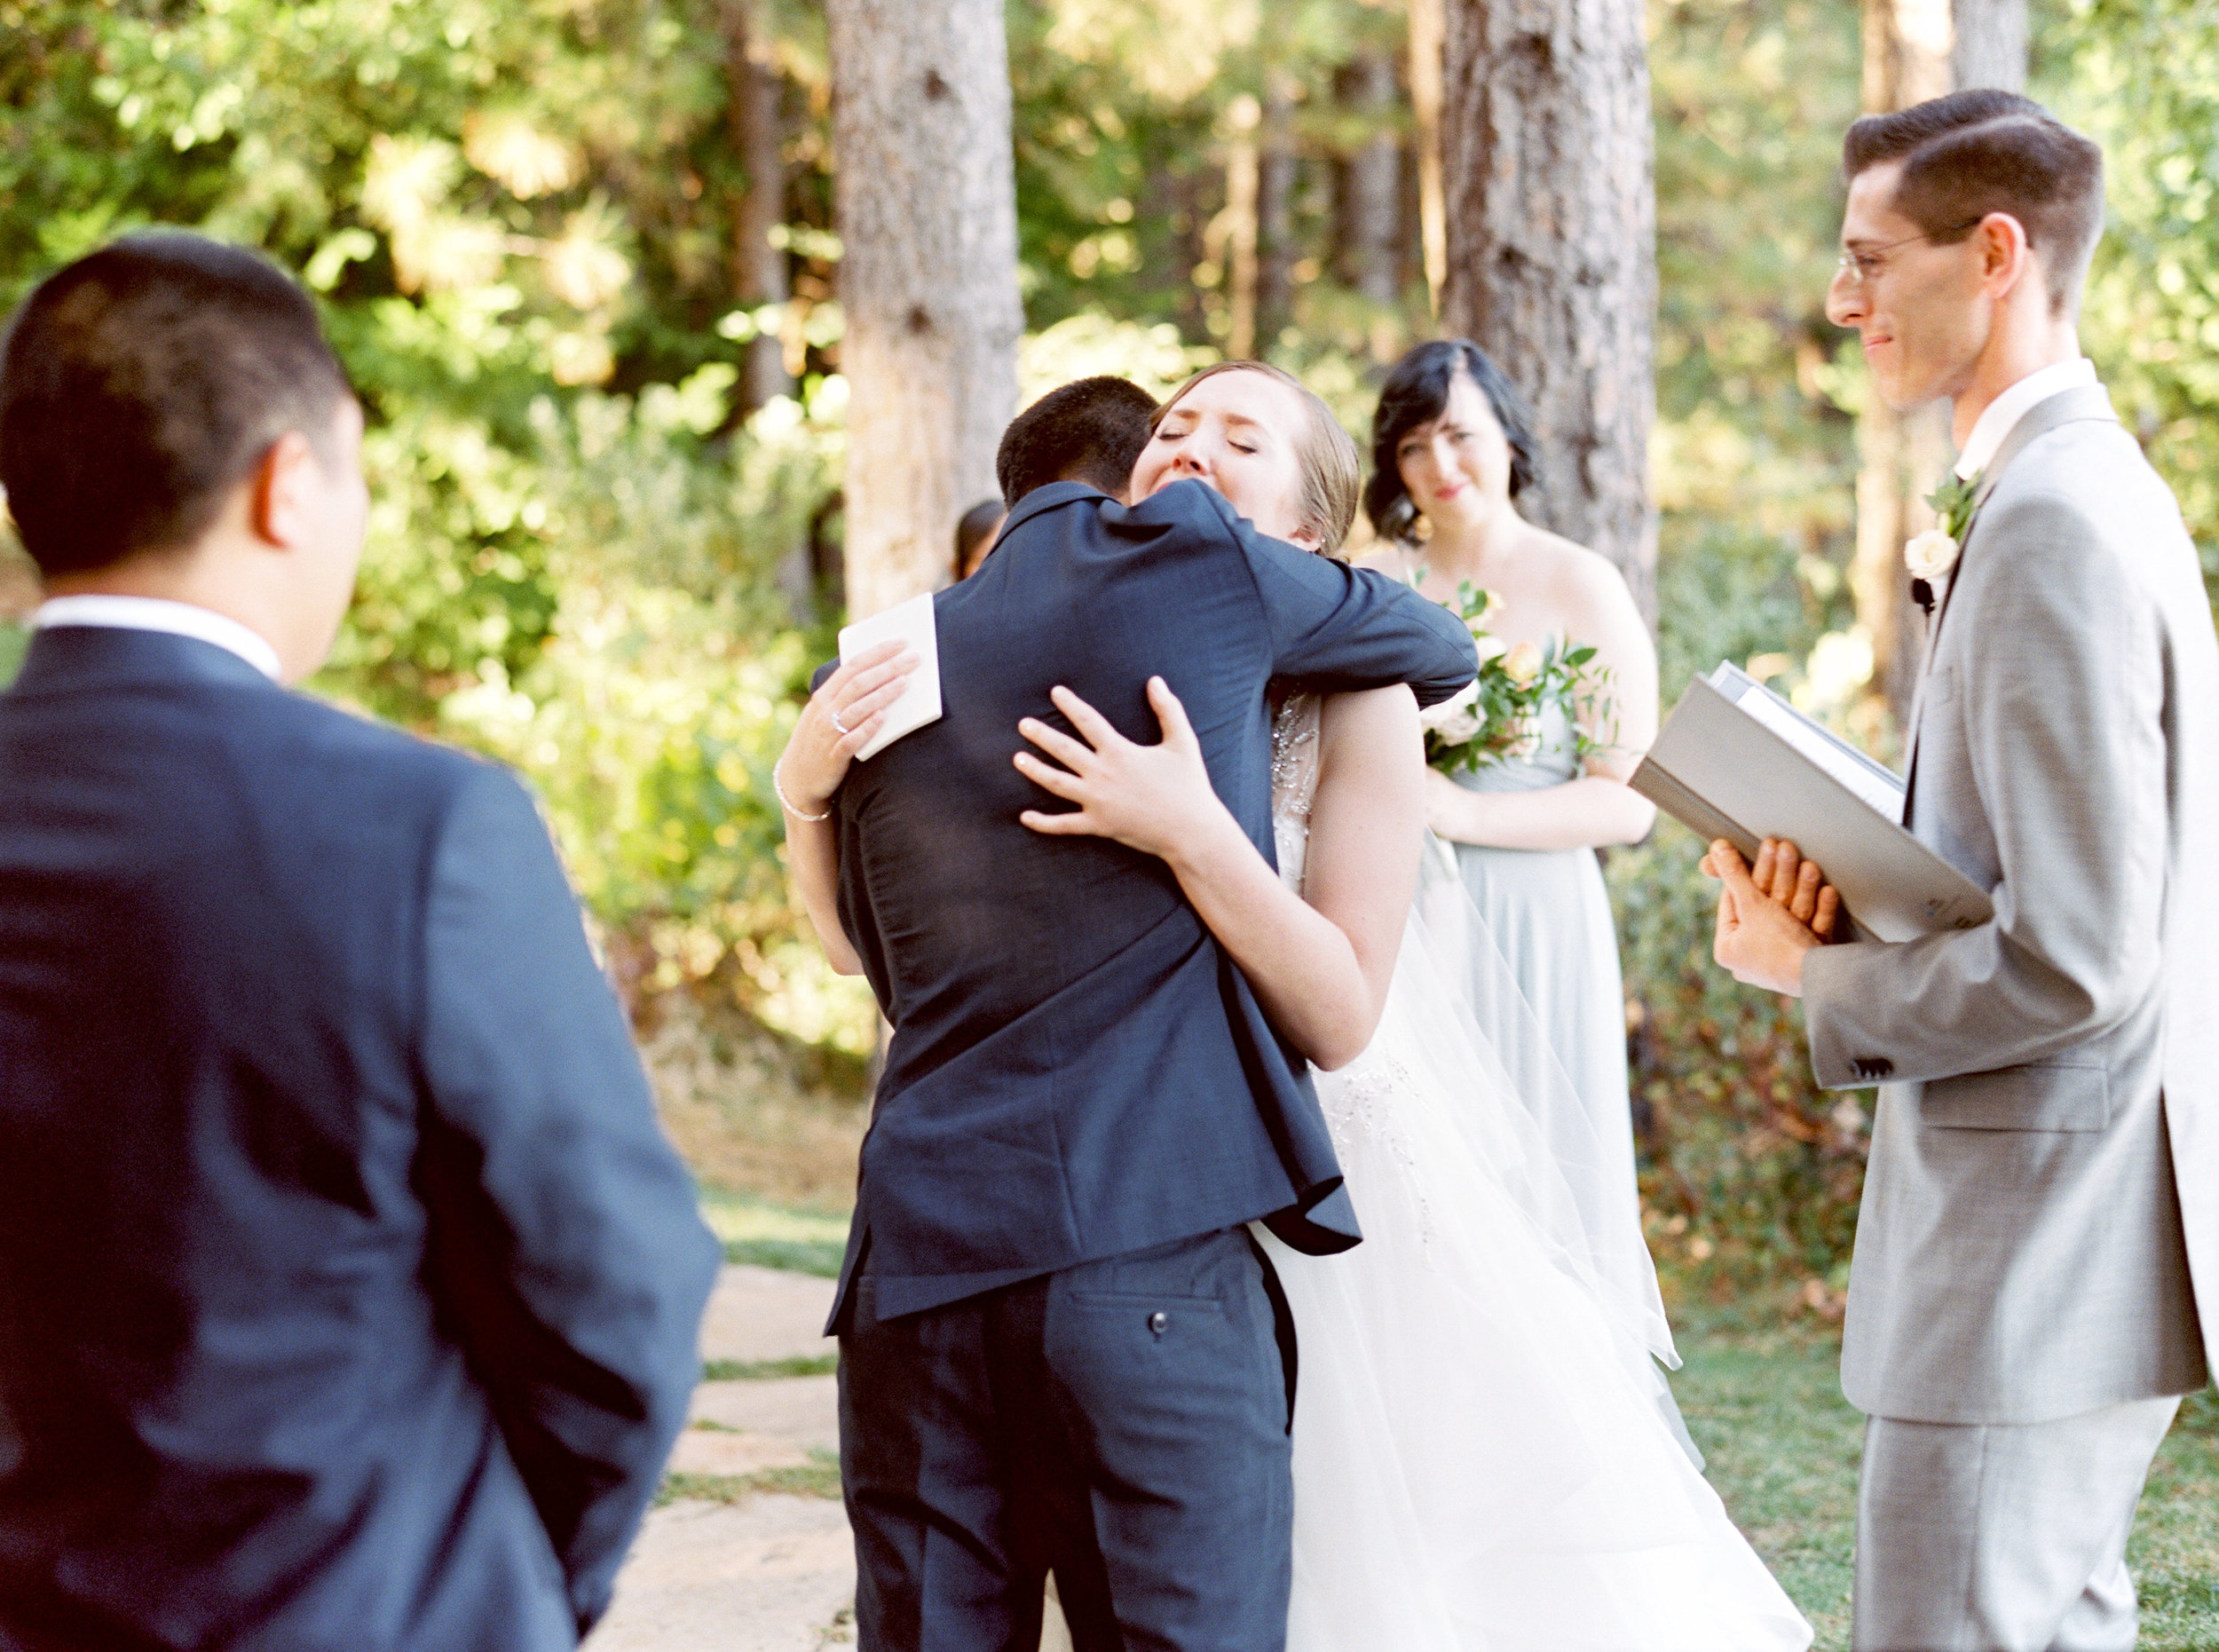 Forest-house-lodge-wedding-foresthill-california-12.jpg